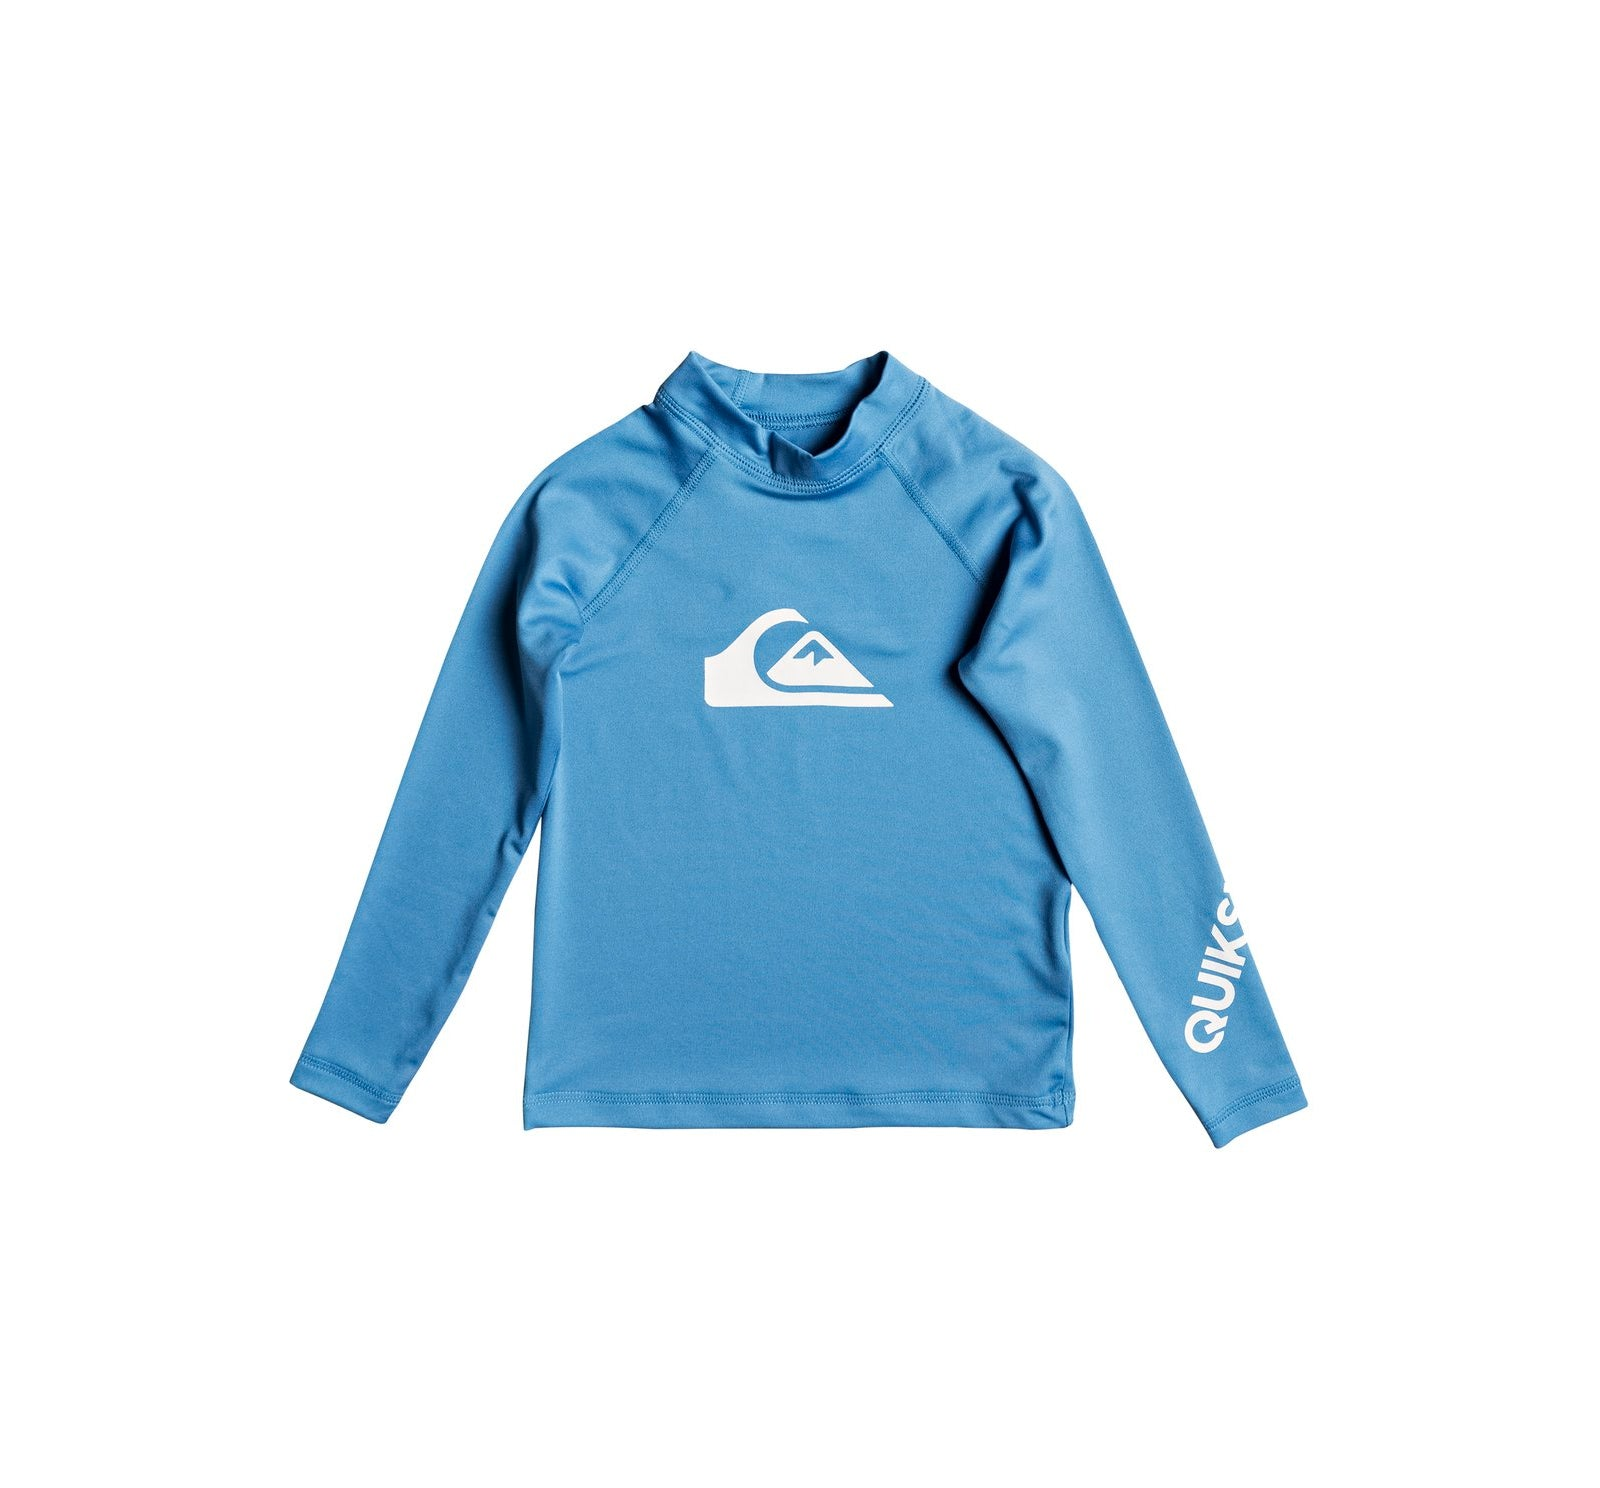 Quiksilver All Time Youth Boy's L/S Rashguard